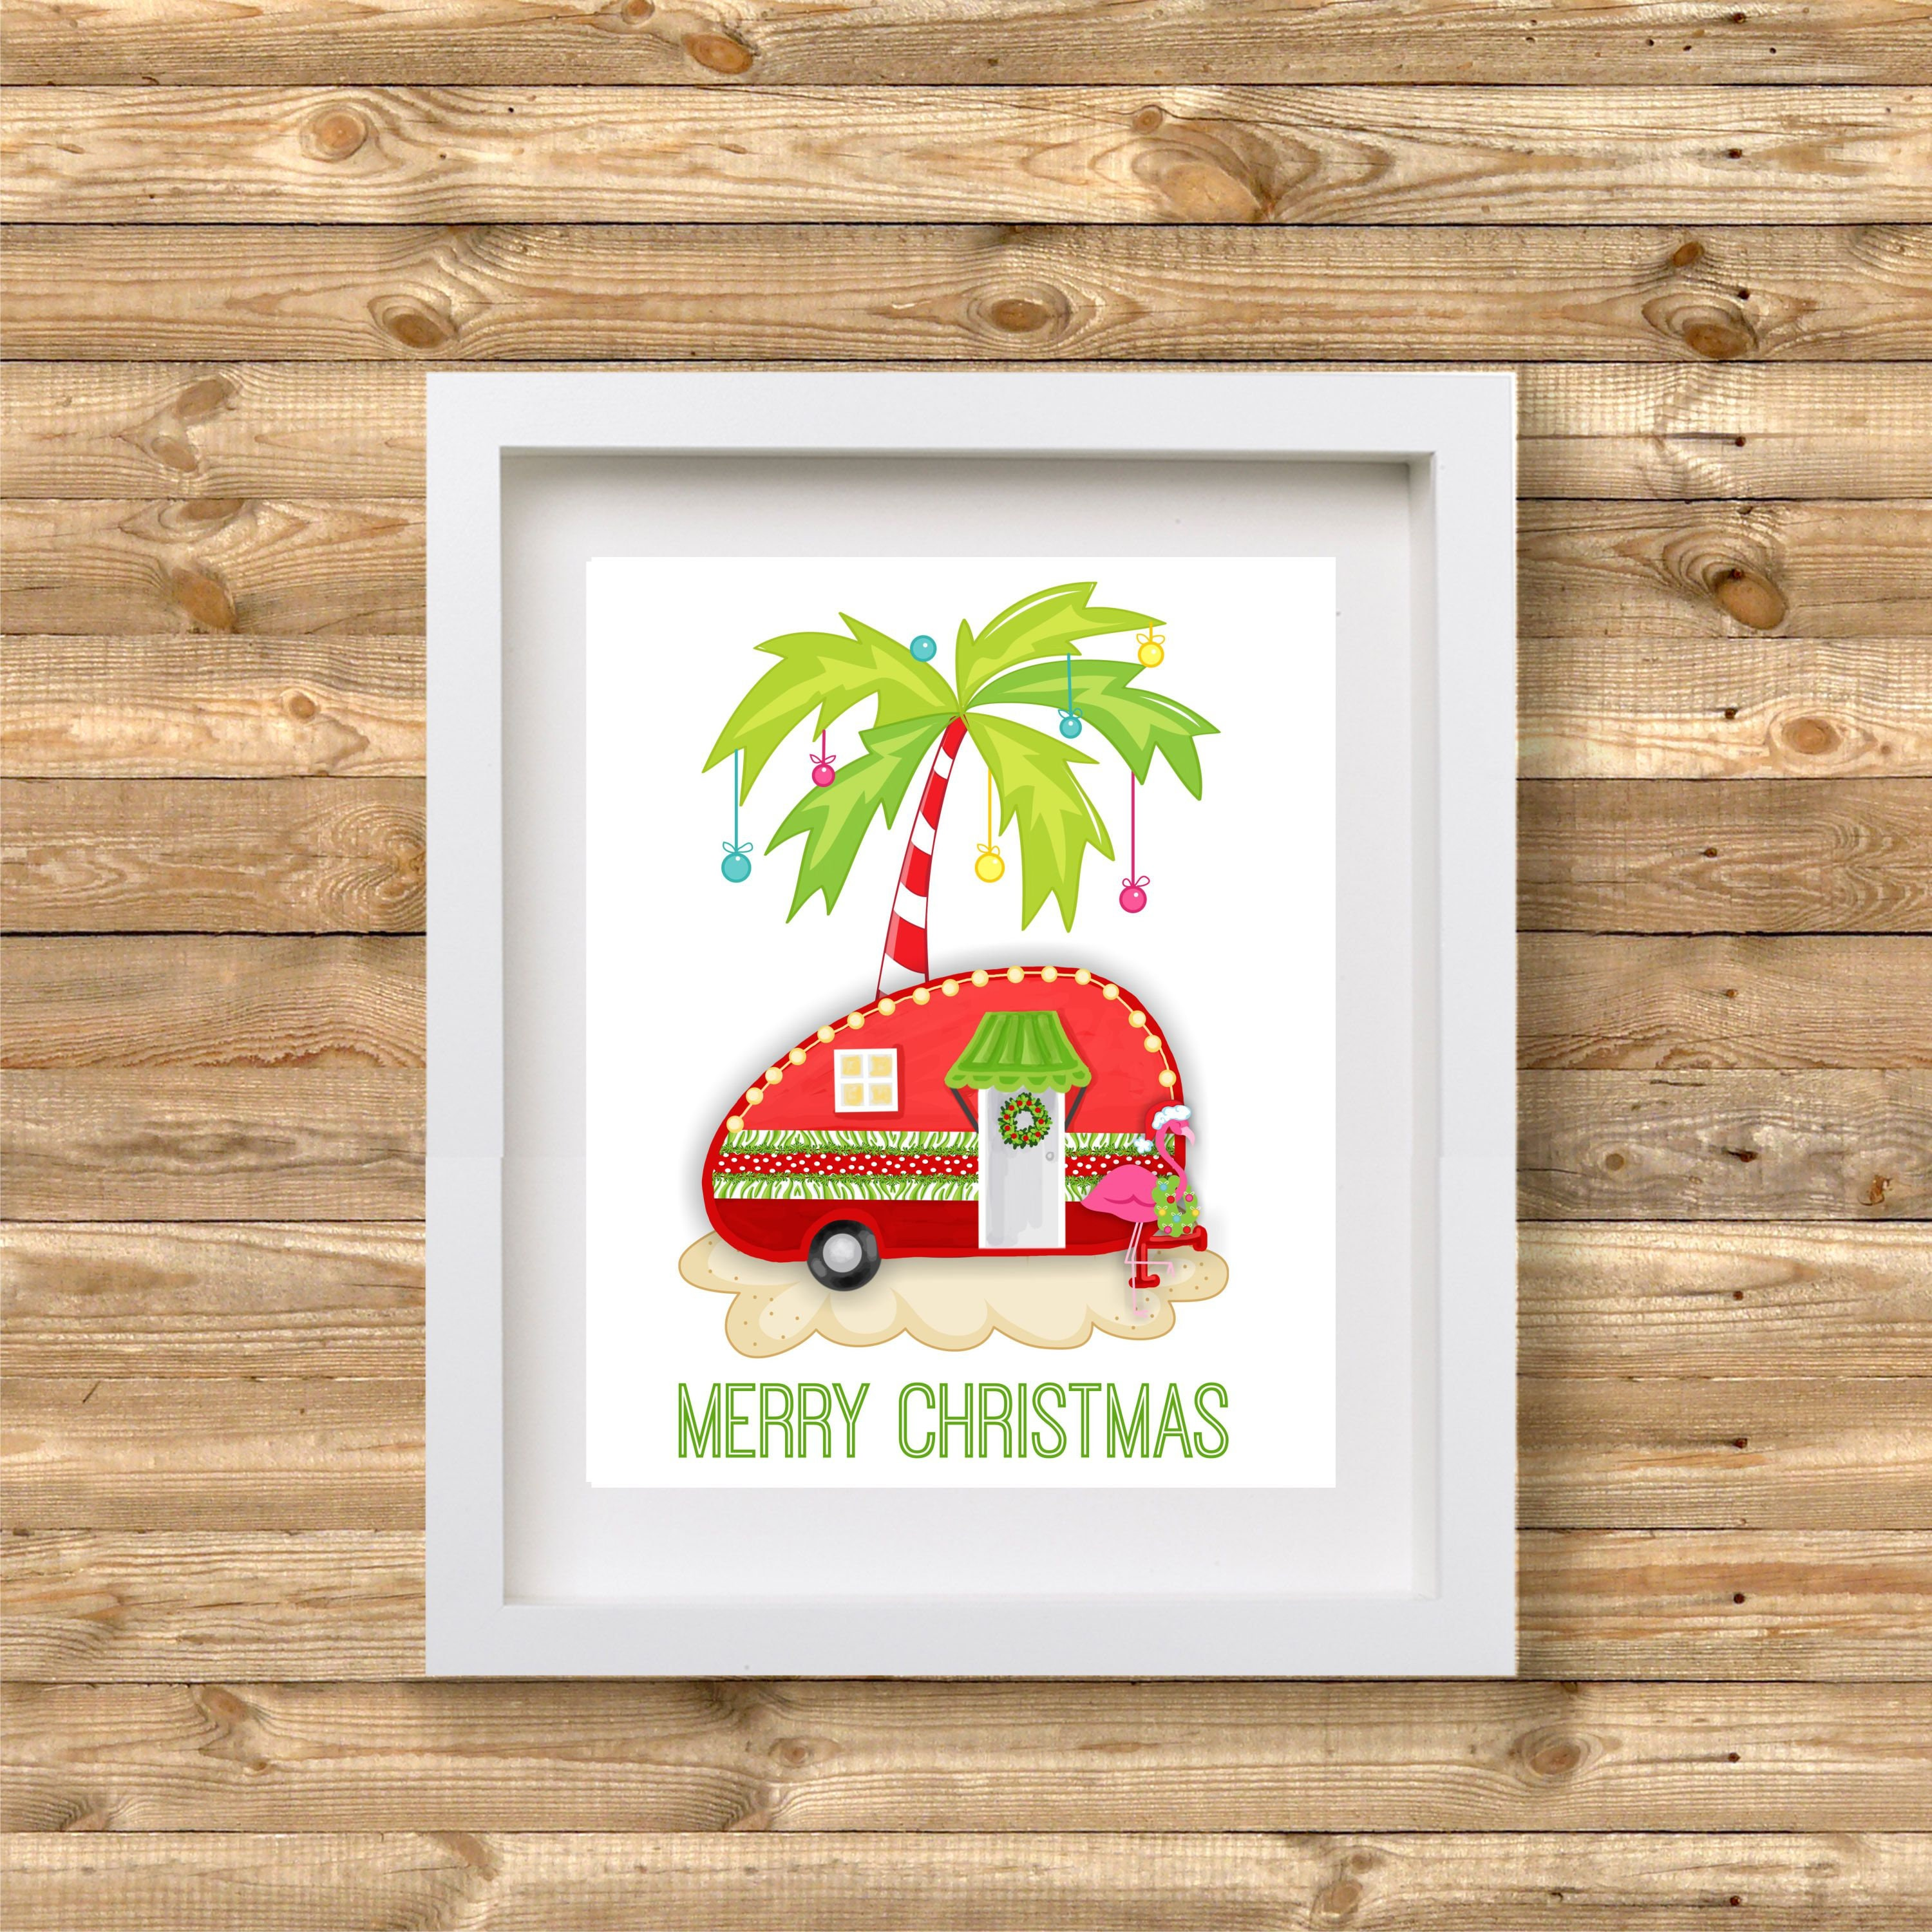 Christmas In July Camping Decorations.Christmas Camper Printable Wall Art Tropical Camper Printable Wall Art Glamping Decor Christmas In July Camping Decor Rv Decor